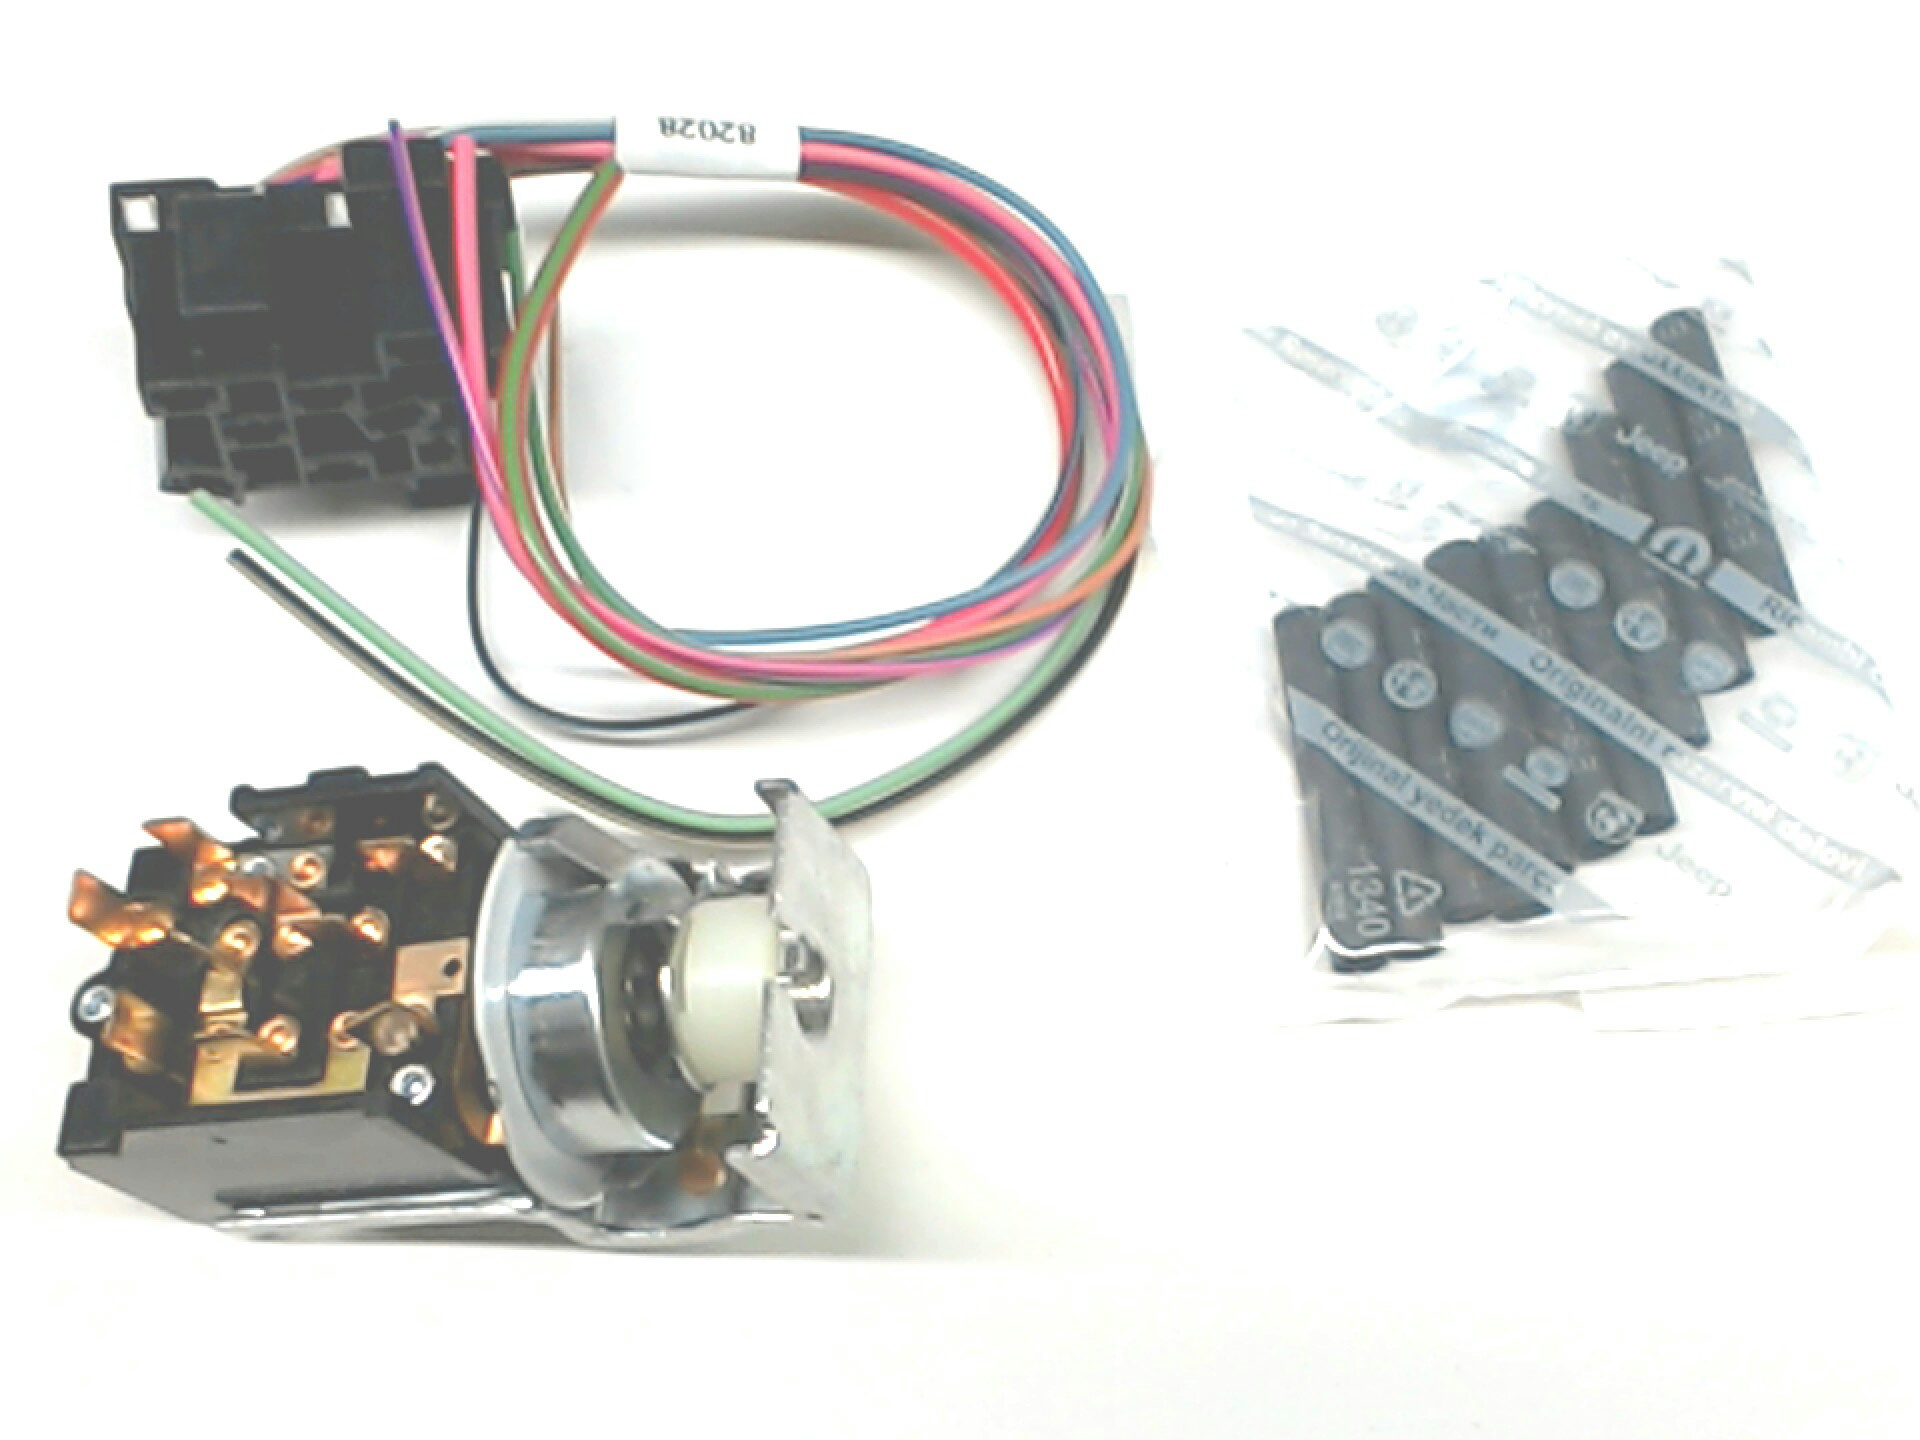 a_20151102_1152287823 Uper Switch Pigtail Wiring Diagram on pigtail wiring harness, pigtail fuse, 2004 ford mustang 5 speed transmission diagram, single pole switch diagram, electrical diagram, trailer pigtail diagram, pigtail wiring for home, resistor diagram, pigtail valve, sensor diagram, pigtail outlet diagram, 18 wheel truck trailer diagram,